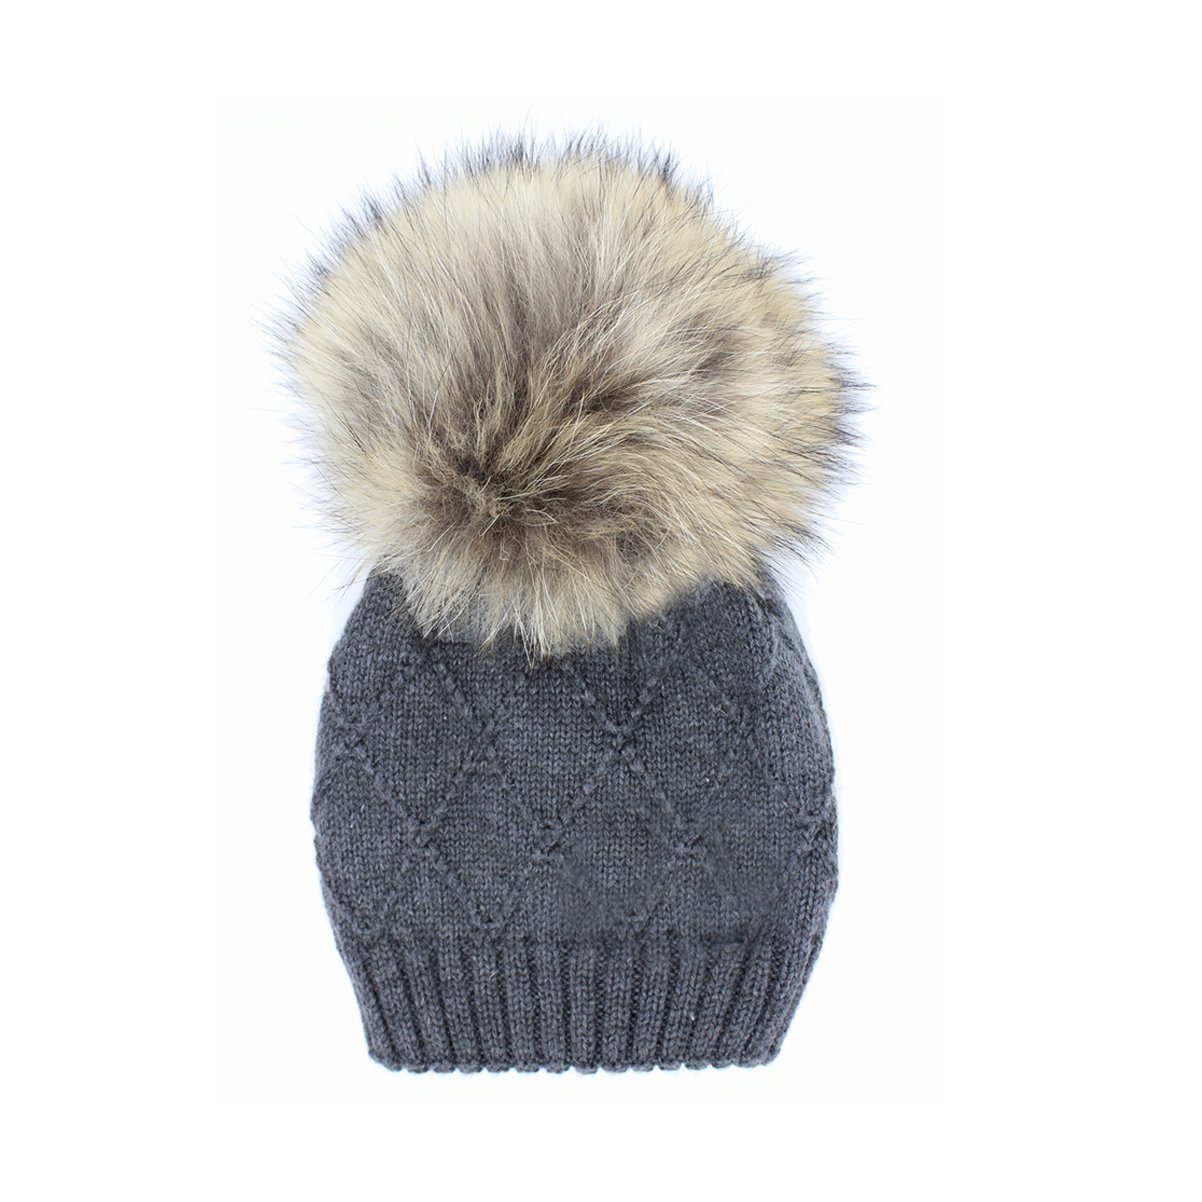 Chunky Knit Wool Hat